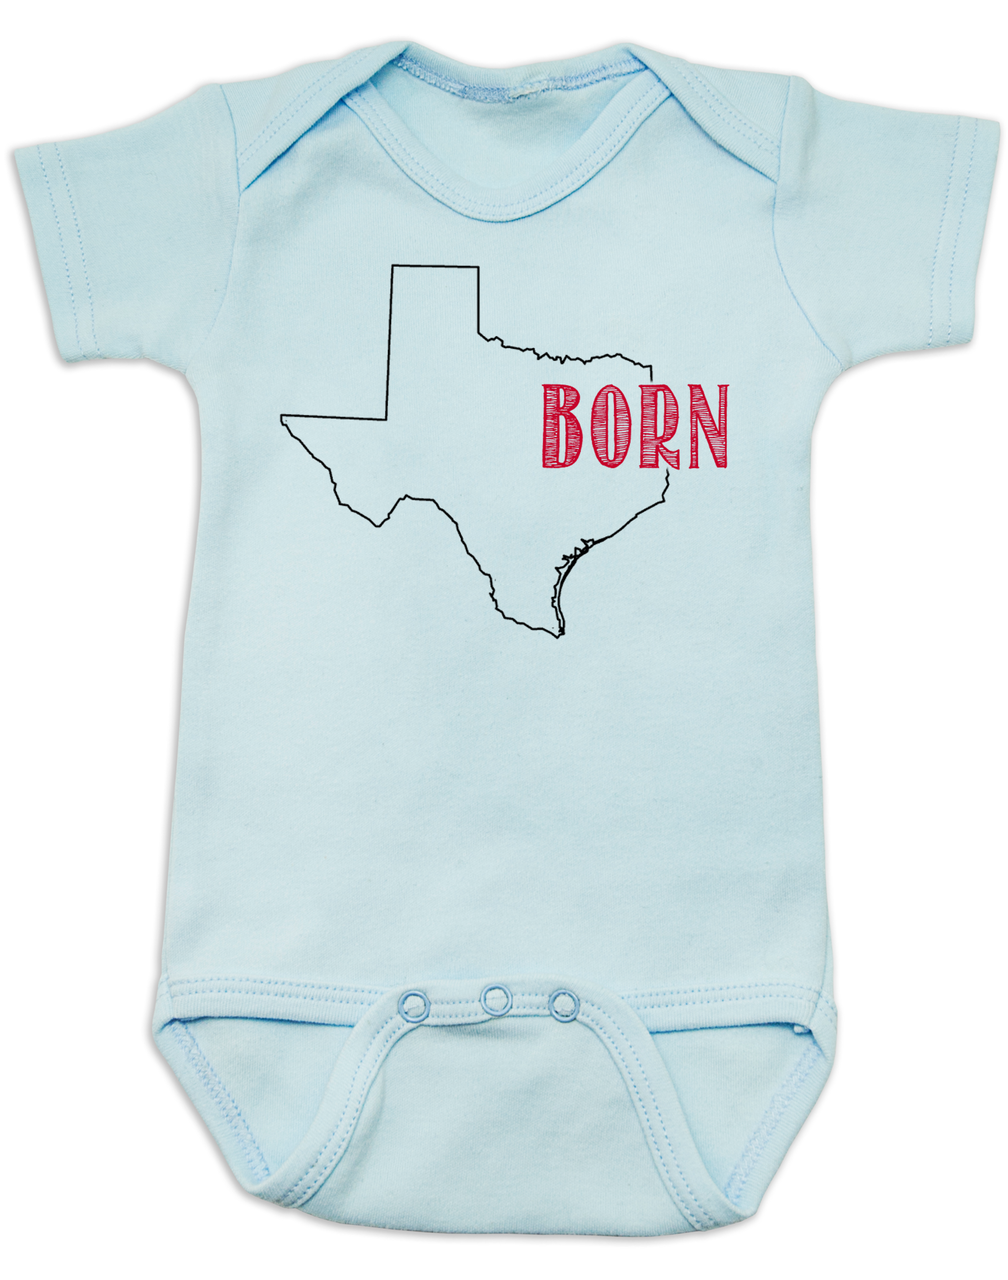 a984d8cdd Born in Texas Bodysuit. Show your Home State pride. Unique, cool, badass